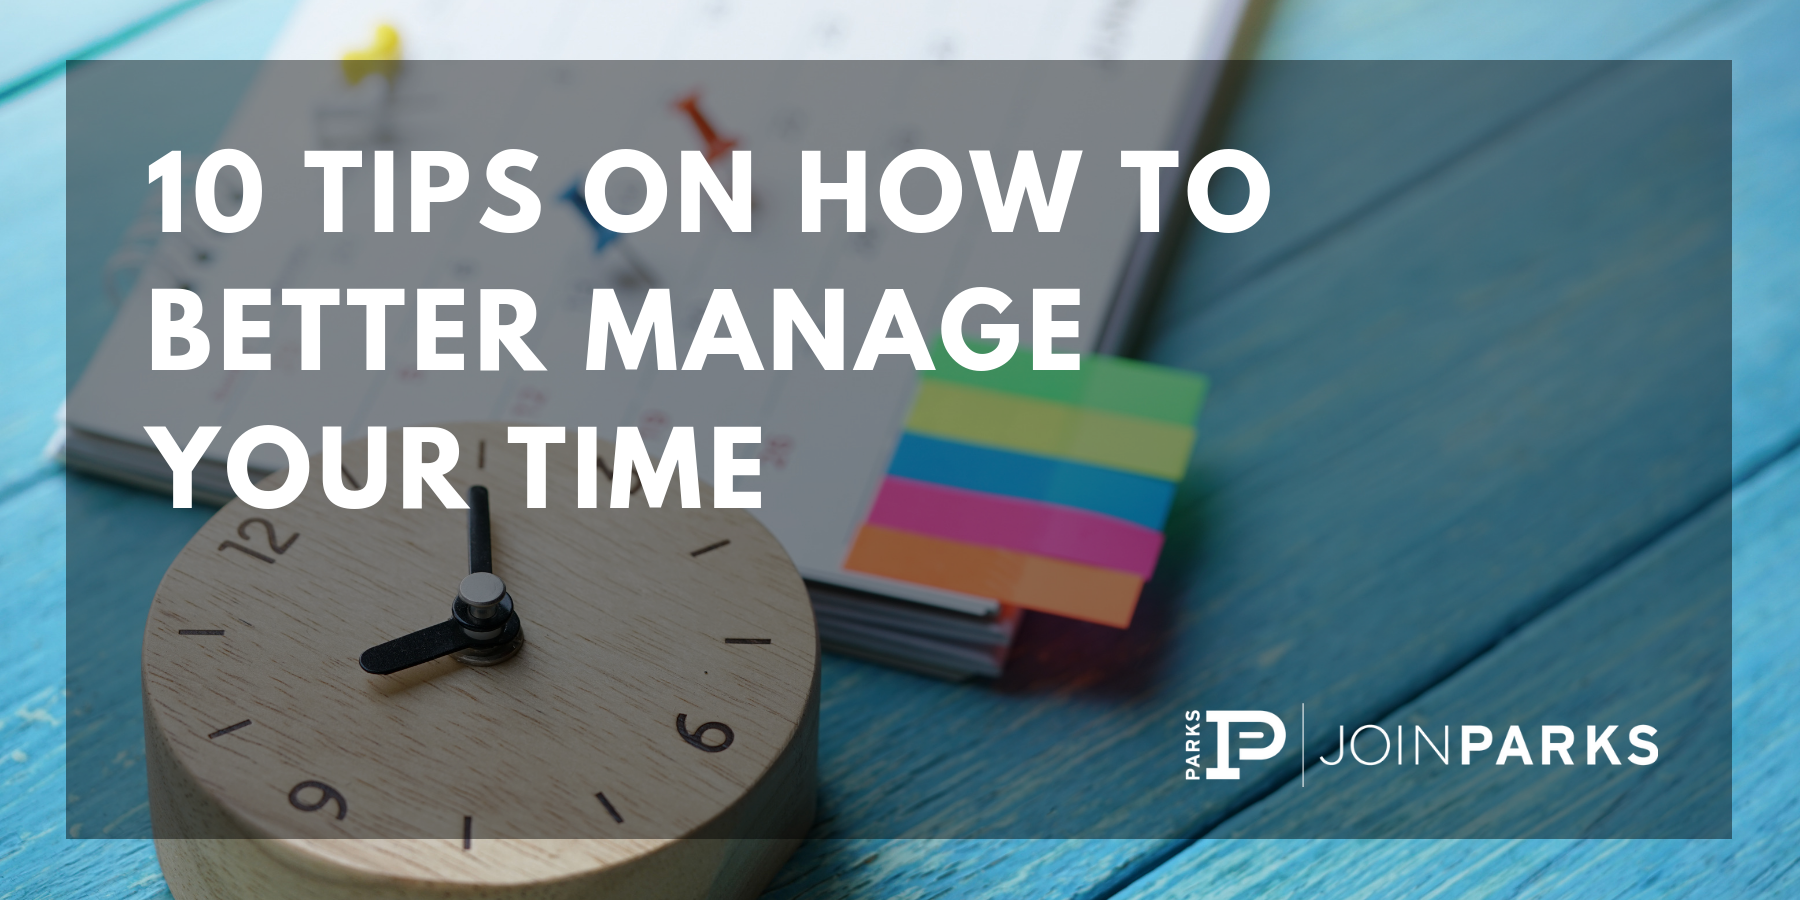 10 Tips on How to Better Manage Your Time